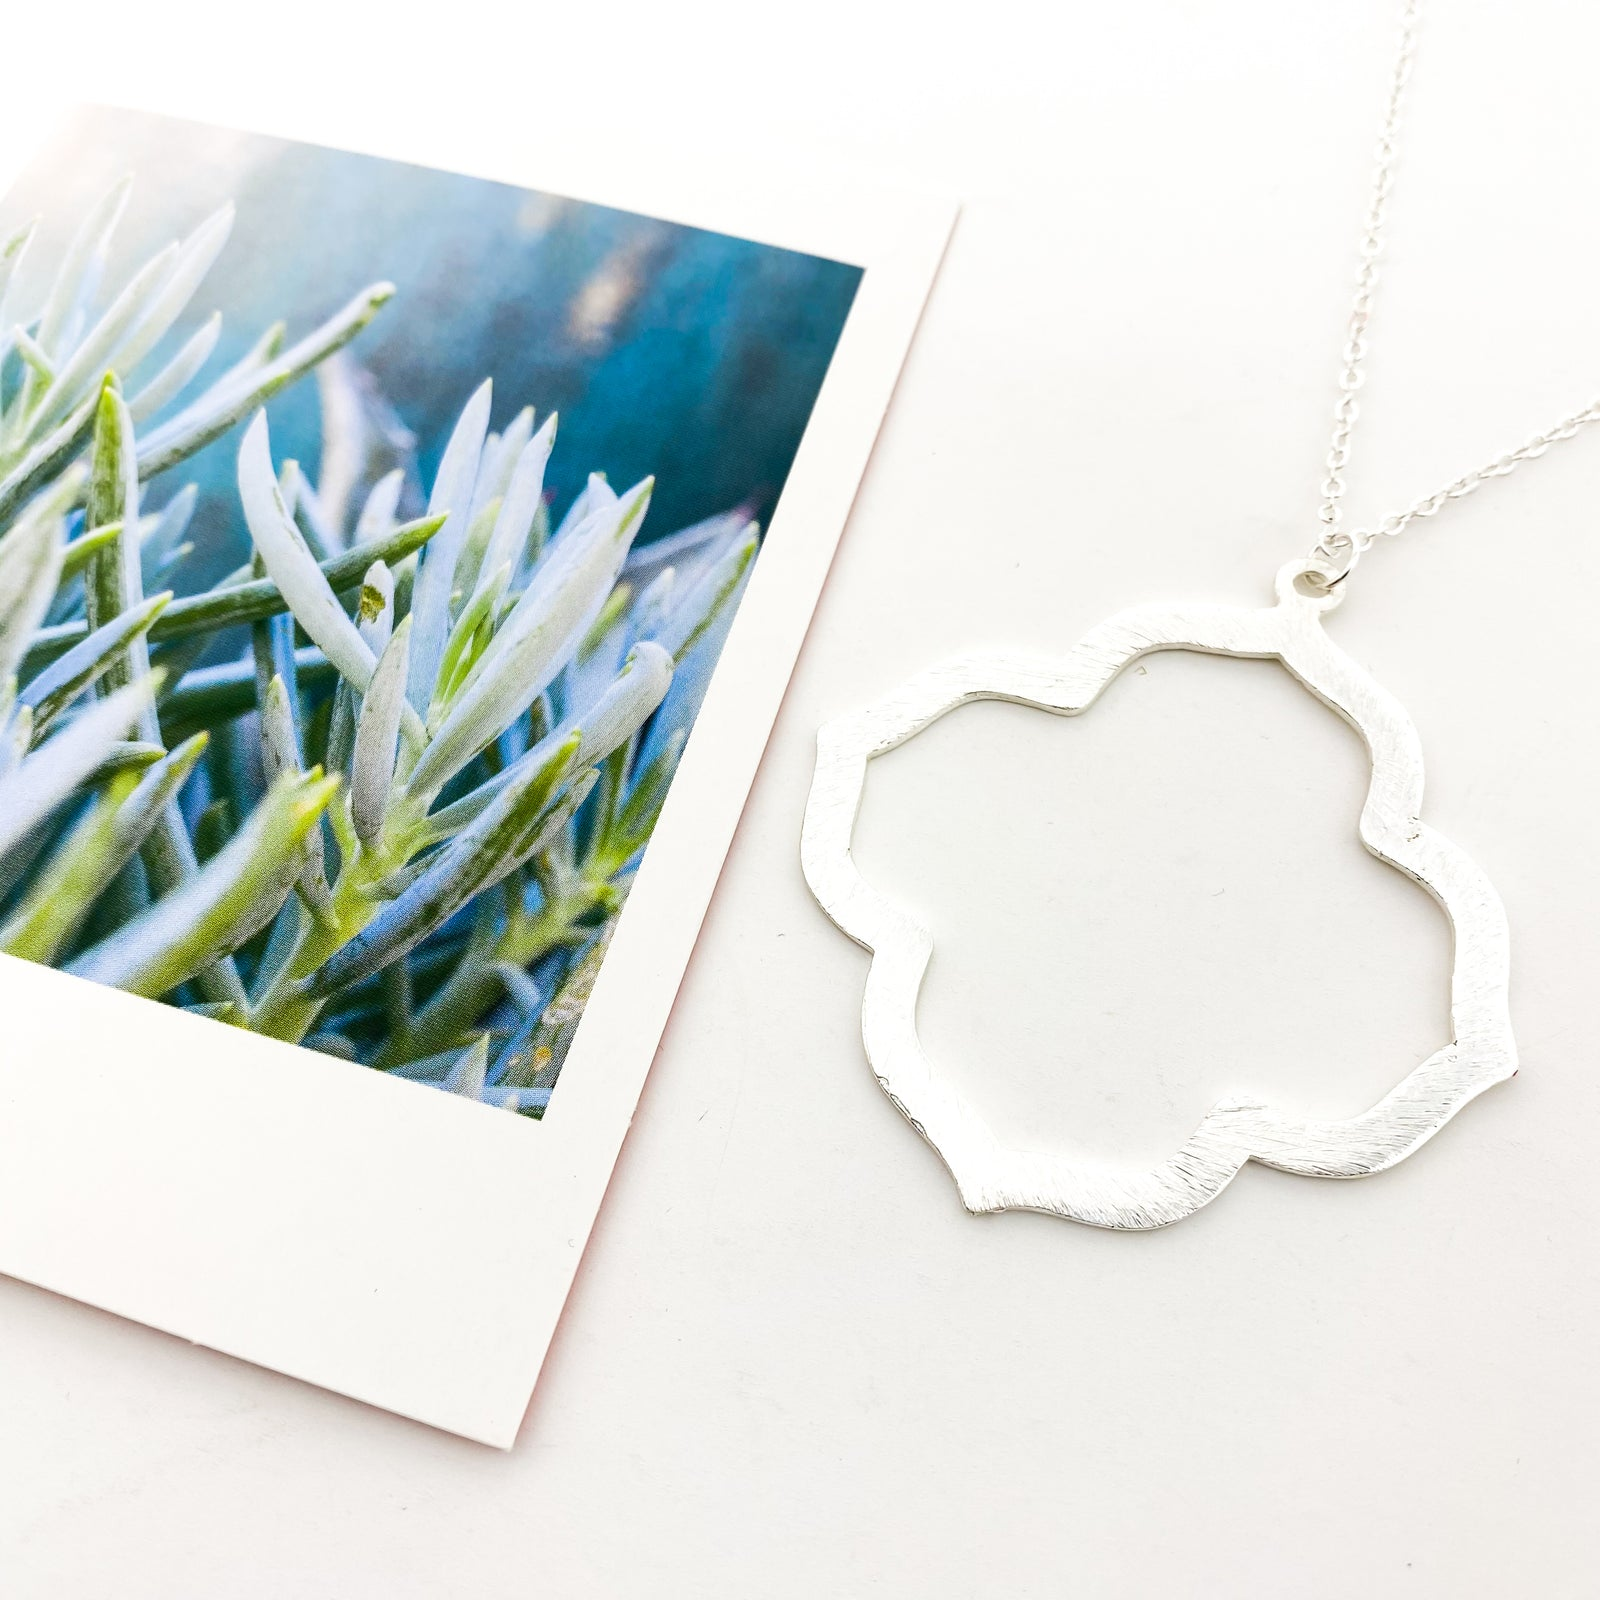 LONG BRUSHED VAN CLEEF NECKLACE | SILVER